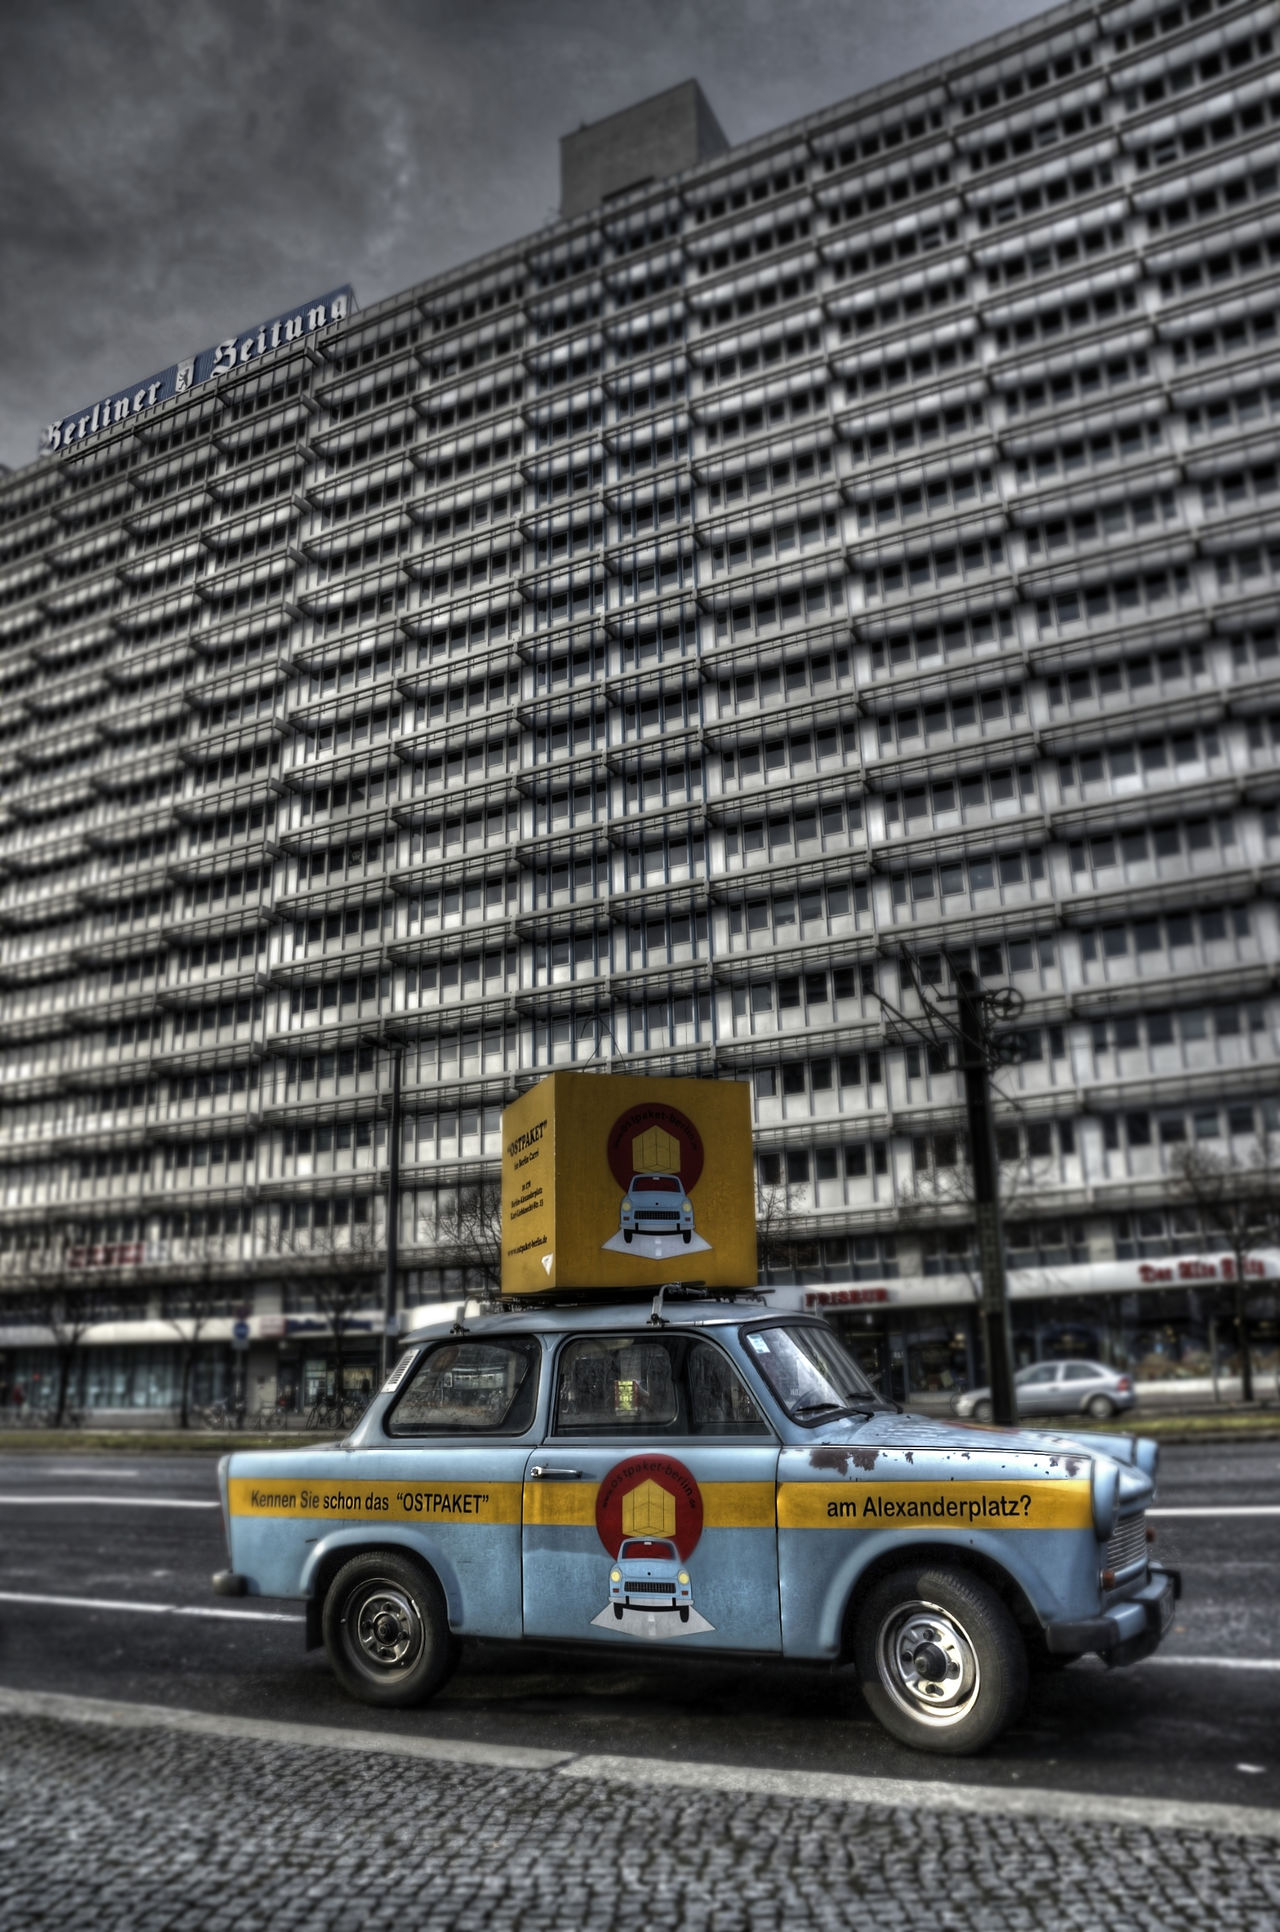 Architecture Berlin Building Exterior Built Structure Car City Day Land Vehicle No People Outdoors Plattenbau Sky Text Trabant Transportation Yellow Taxi